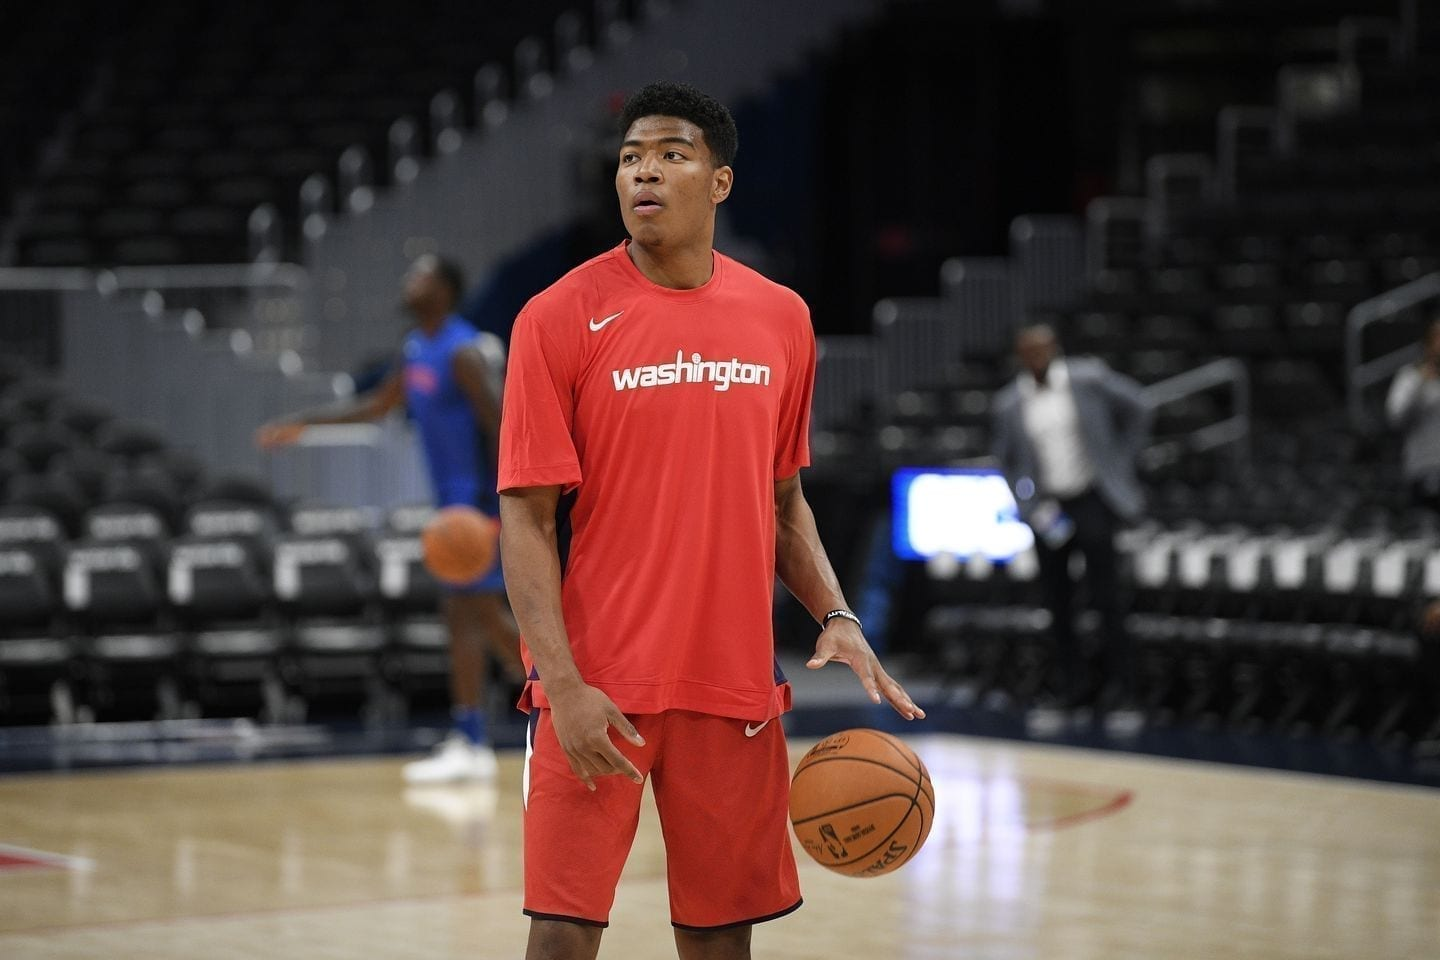 Rui Hachimura has the potential to be the first Japanese NBA star, and the Washington Wizards know what it could mean for their fan base.